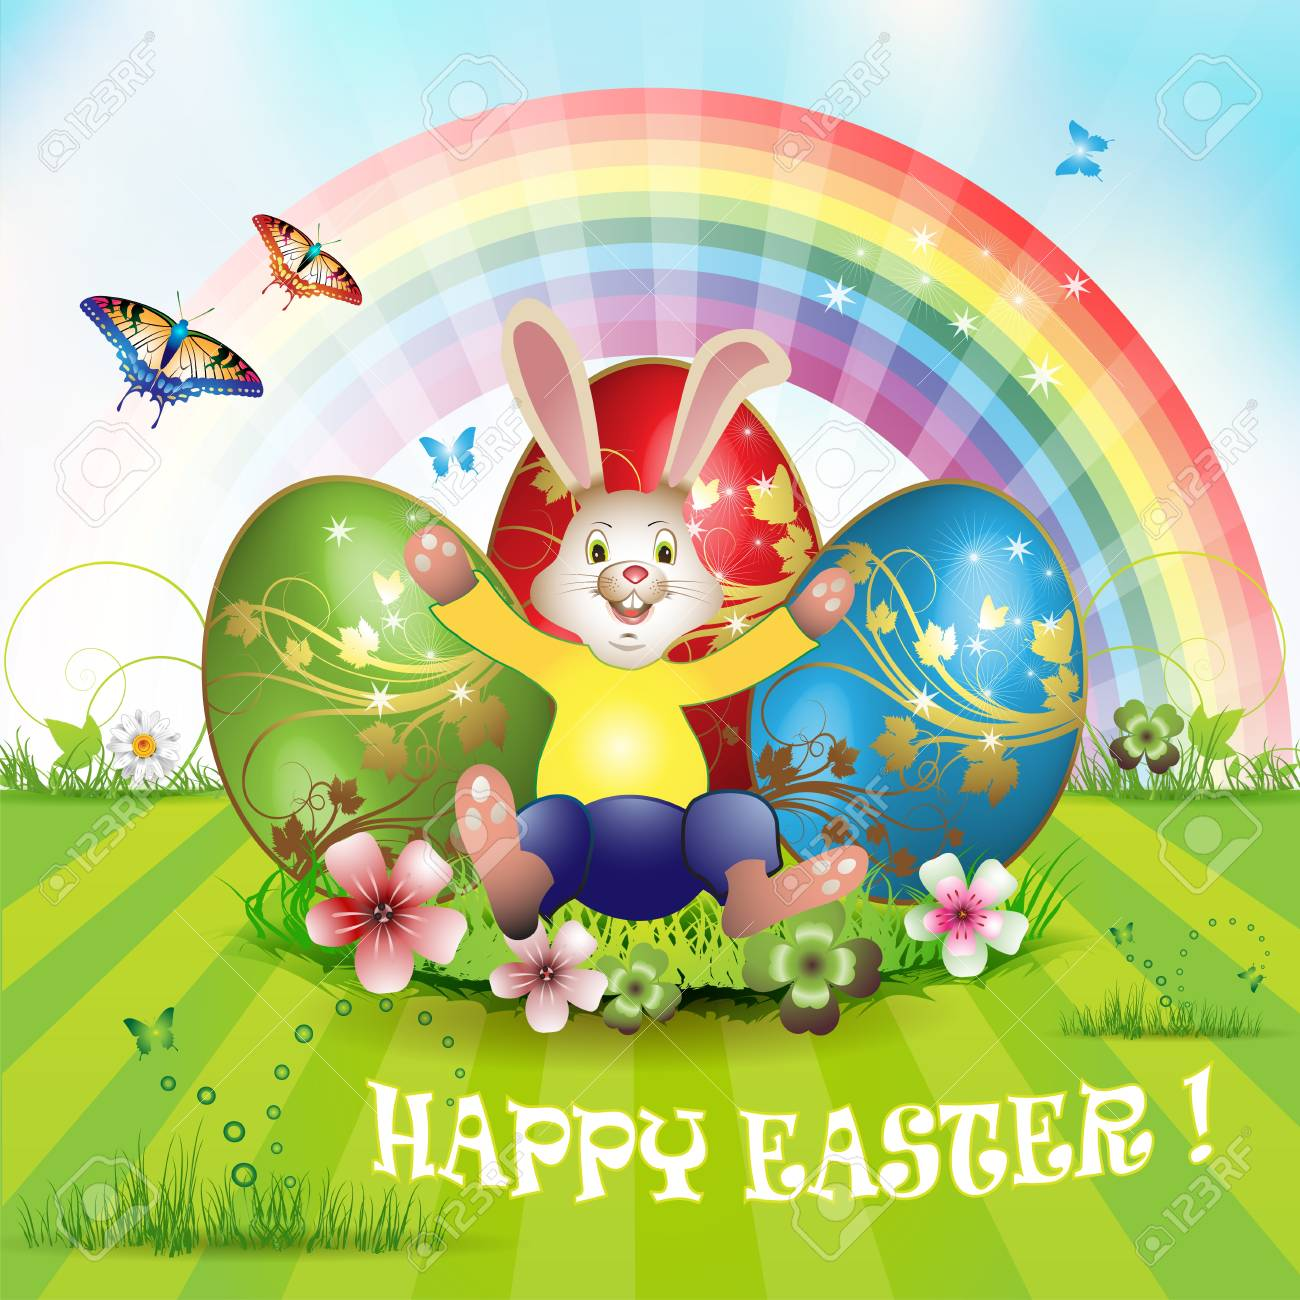 Easter card with bunny, butterflies and decorated egg on grass Stock Vector - 13007786